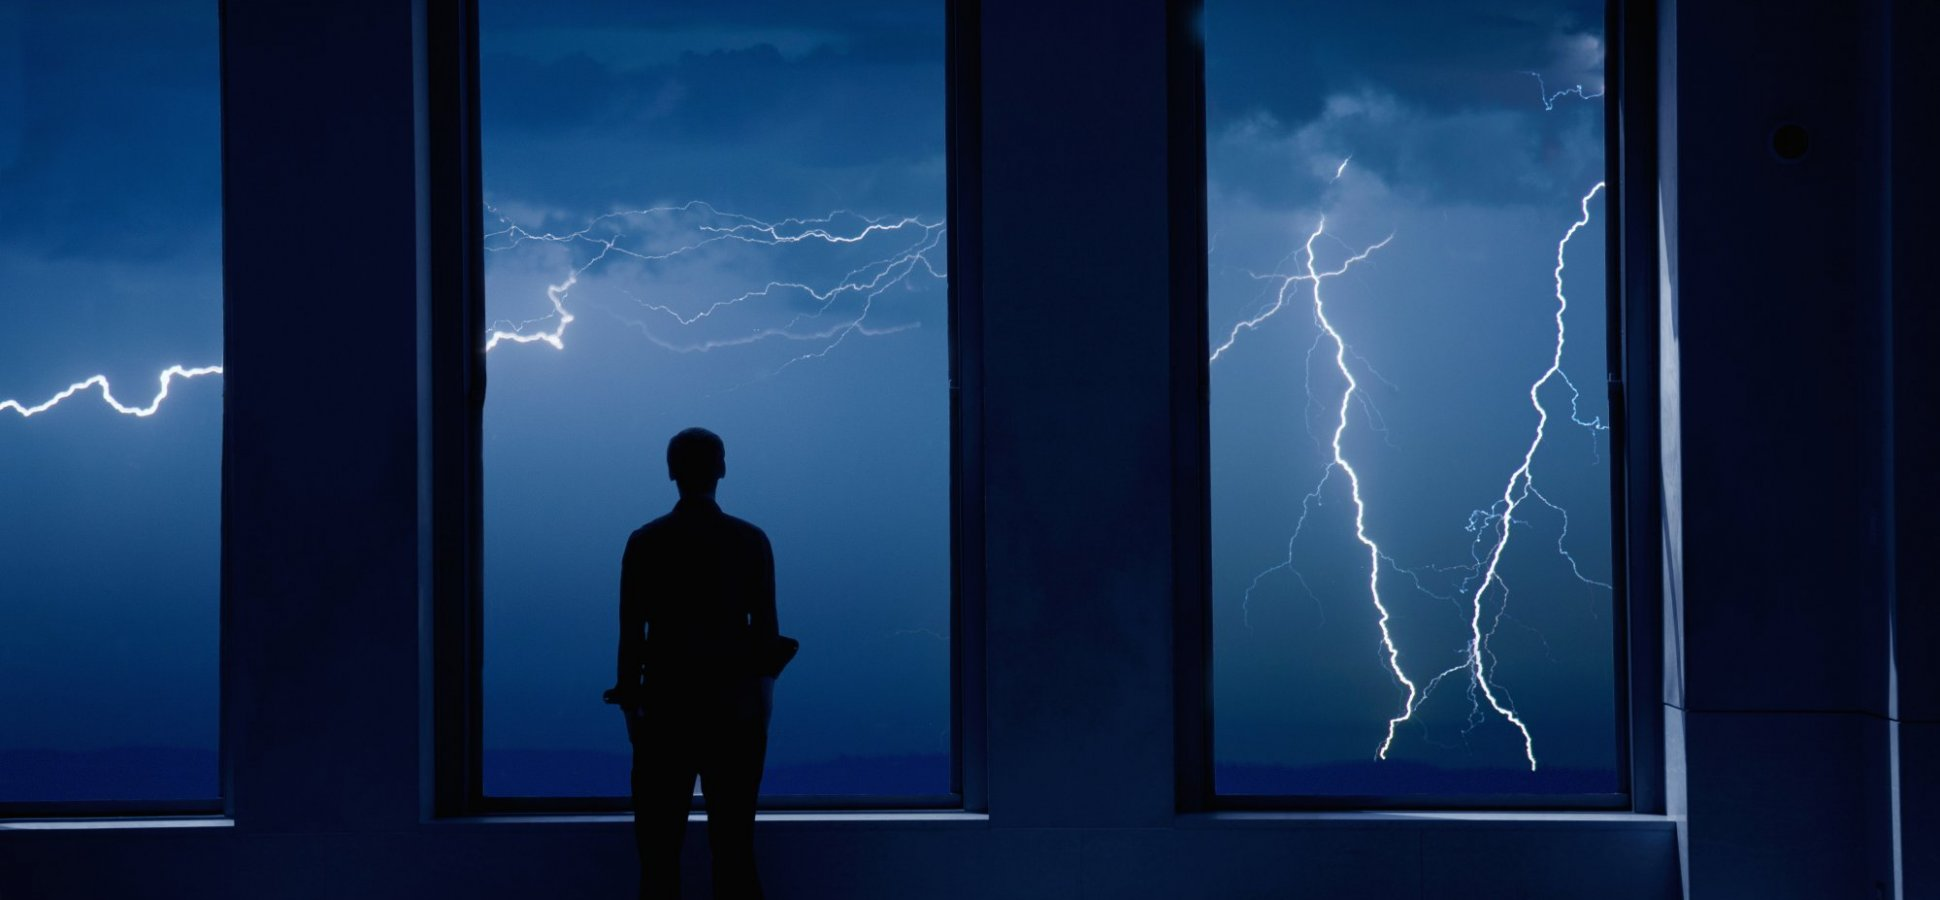 Ready for the Next Crisis? 3 Things Leaders Should Do Today to Prepare for a Crisis Tomorrow